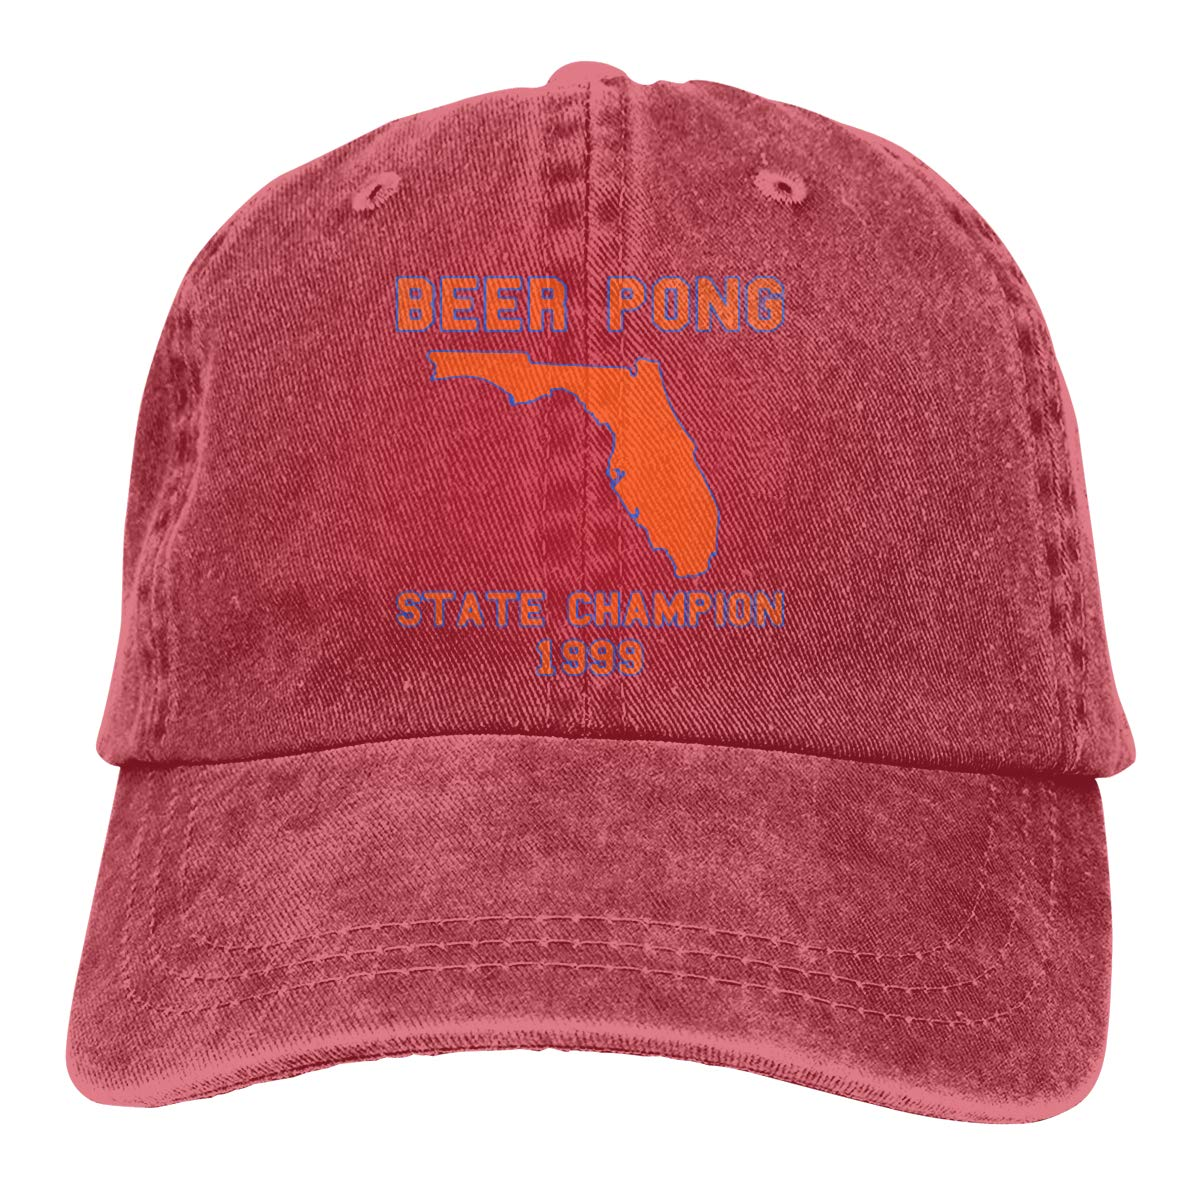 Beer Pong State Champion Unisex Adult Cowboy Hat Outdoor Sports Hat Adjustable Baseball Cap